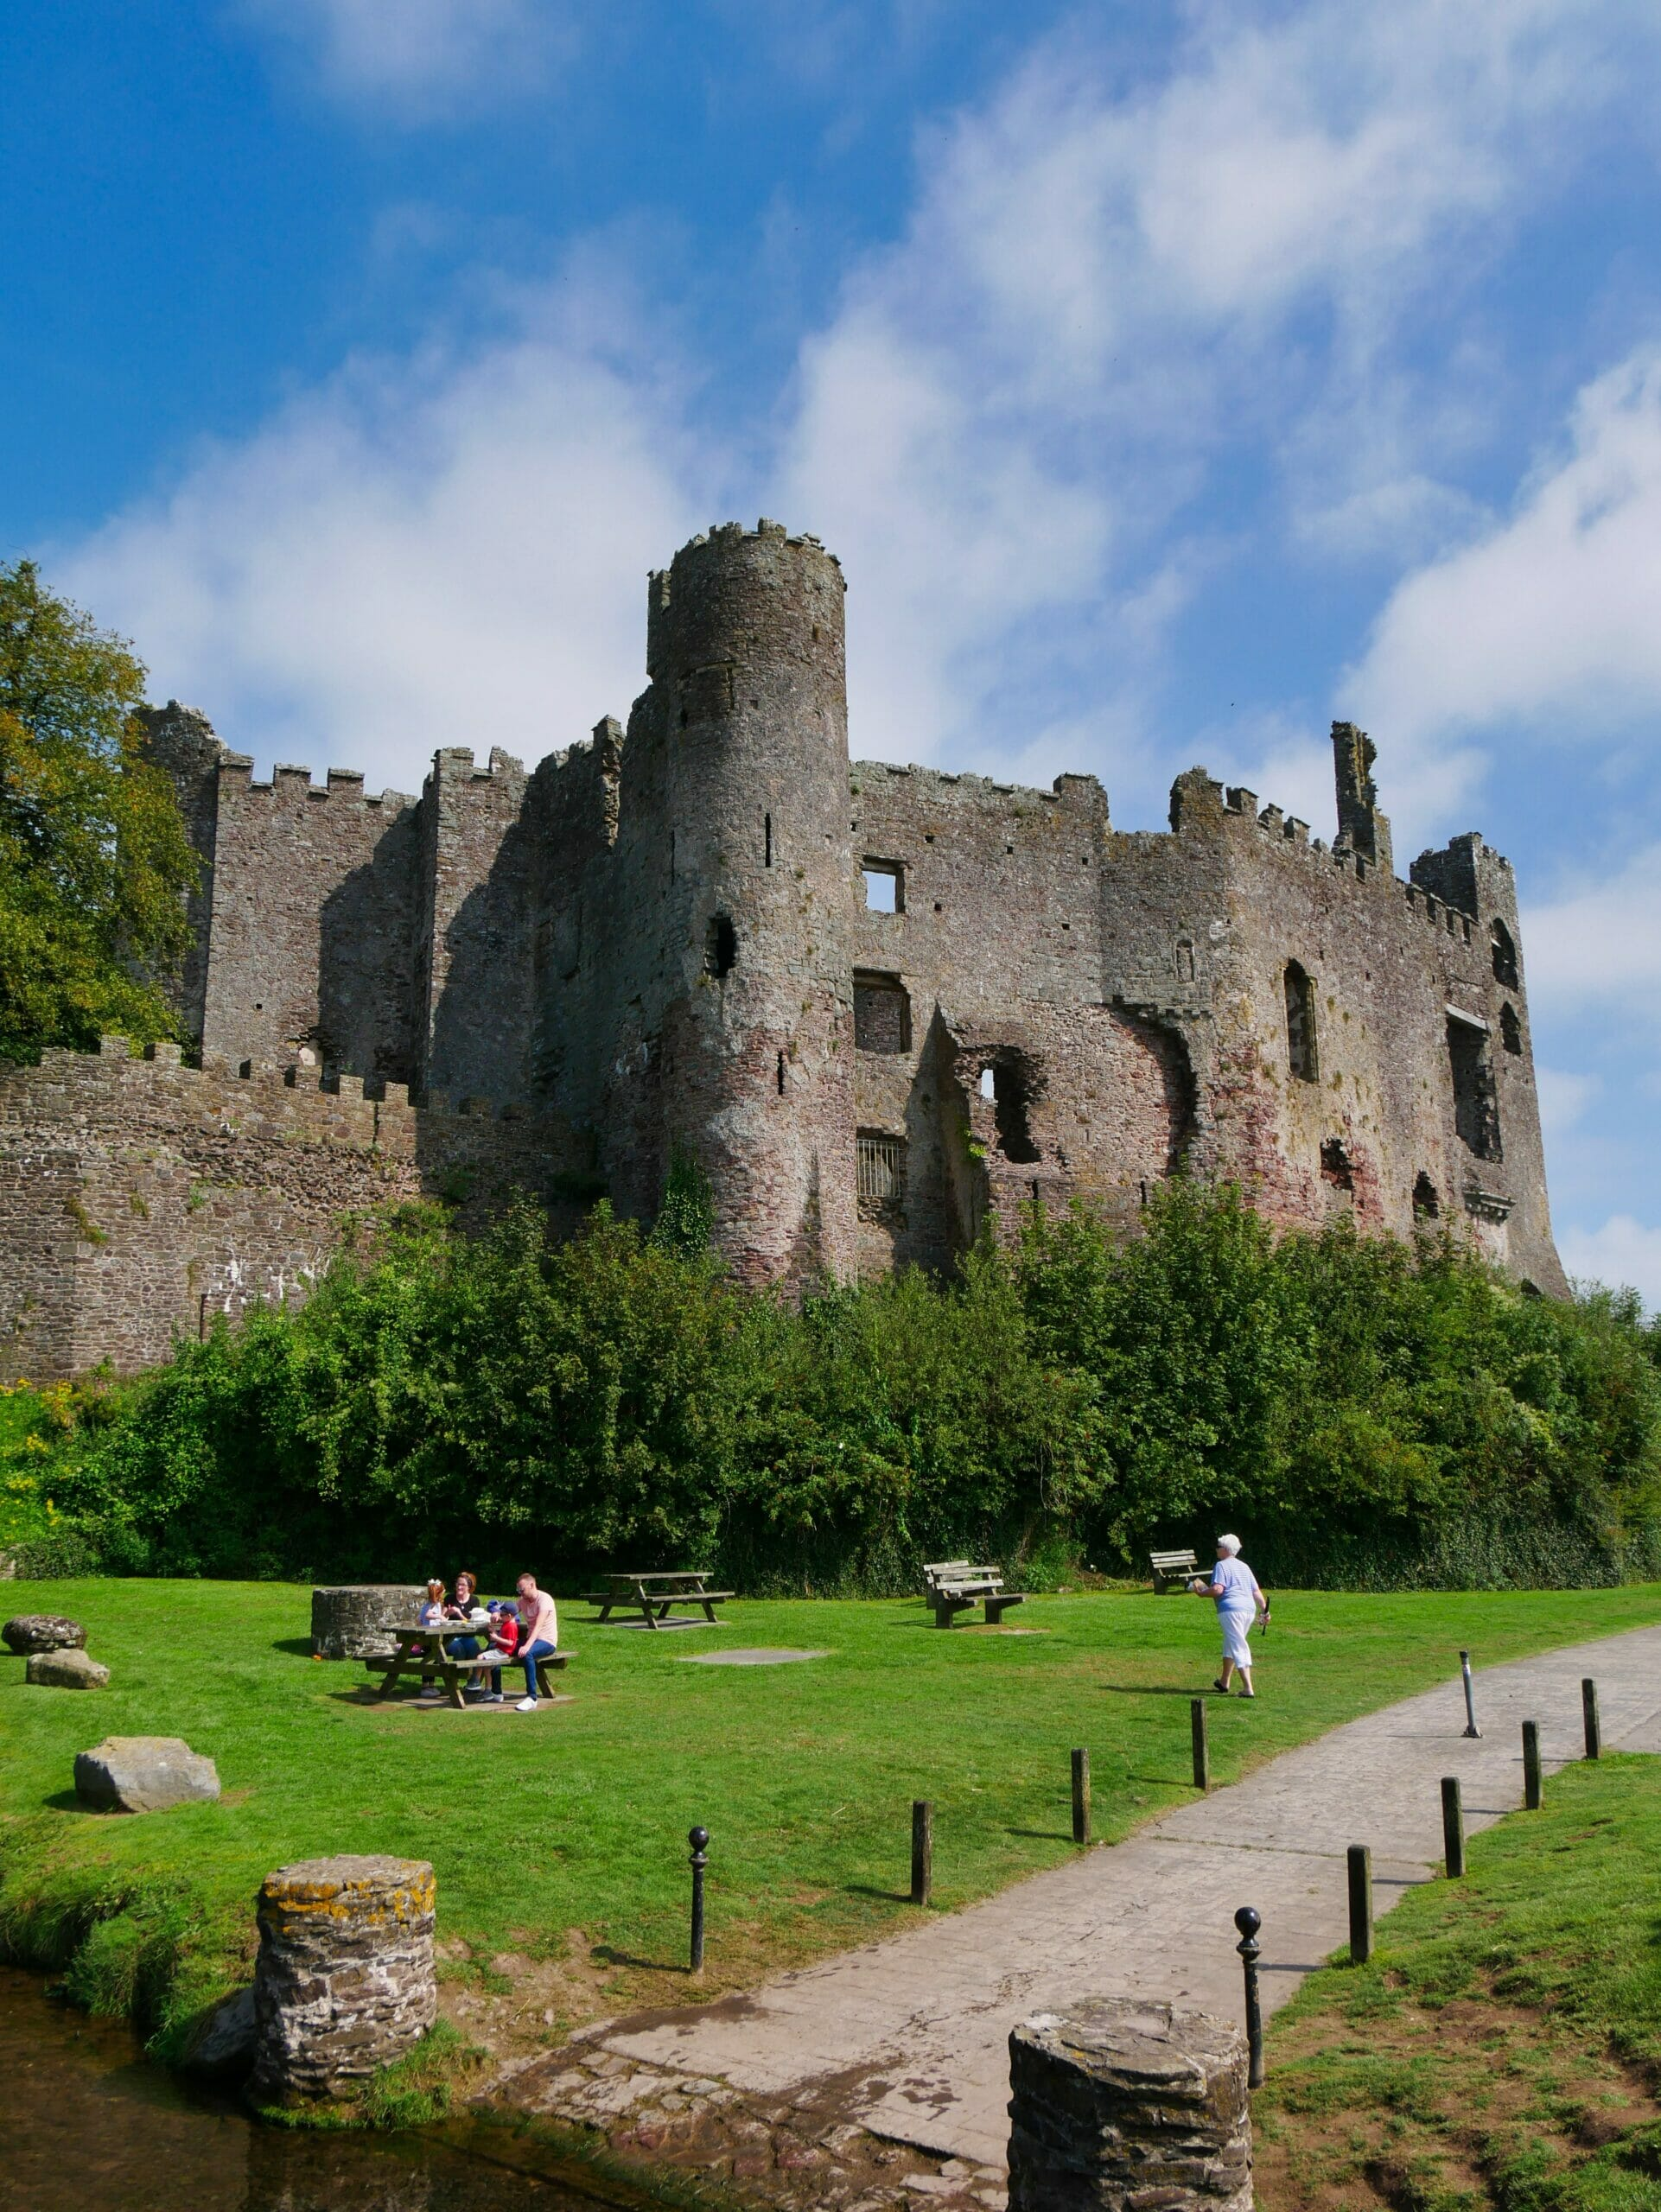 Laugharne castle Wales with people in front on the grass